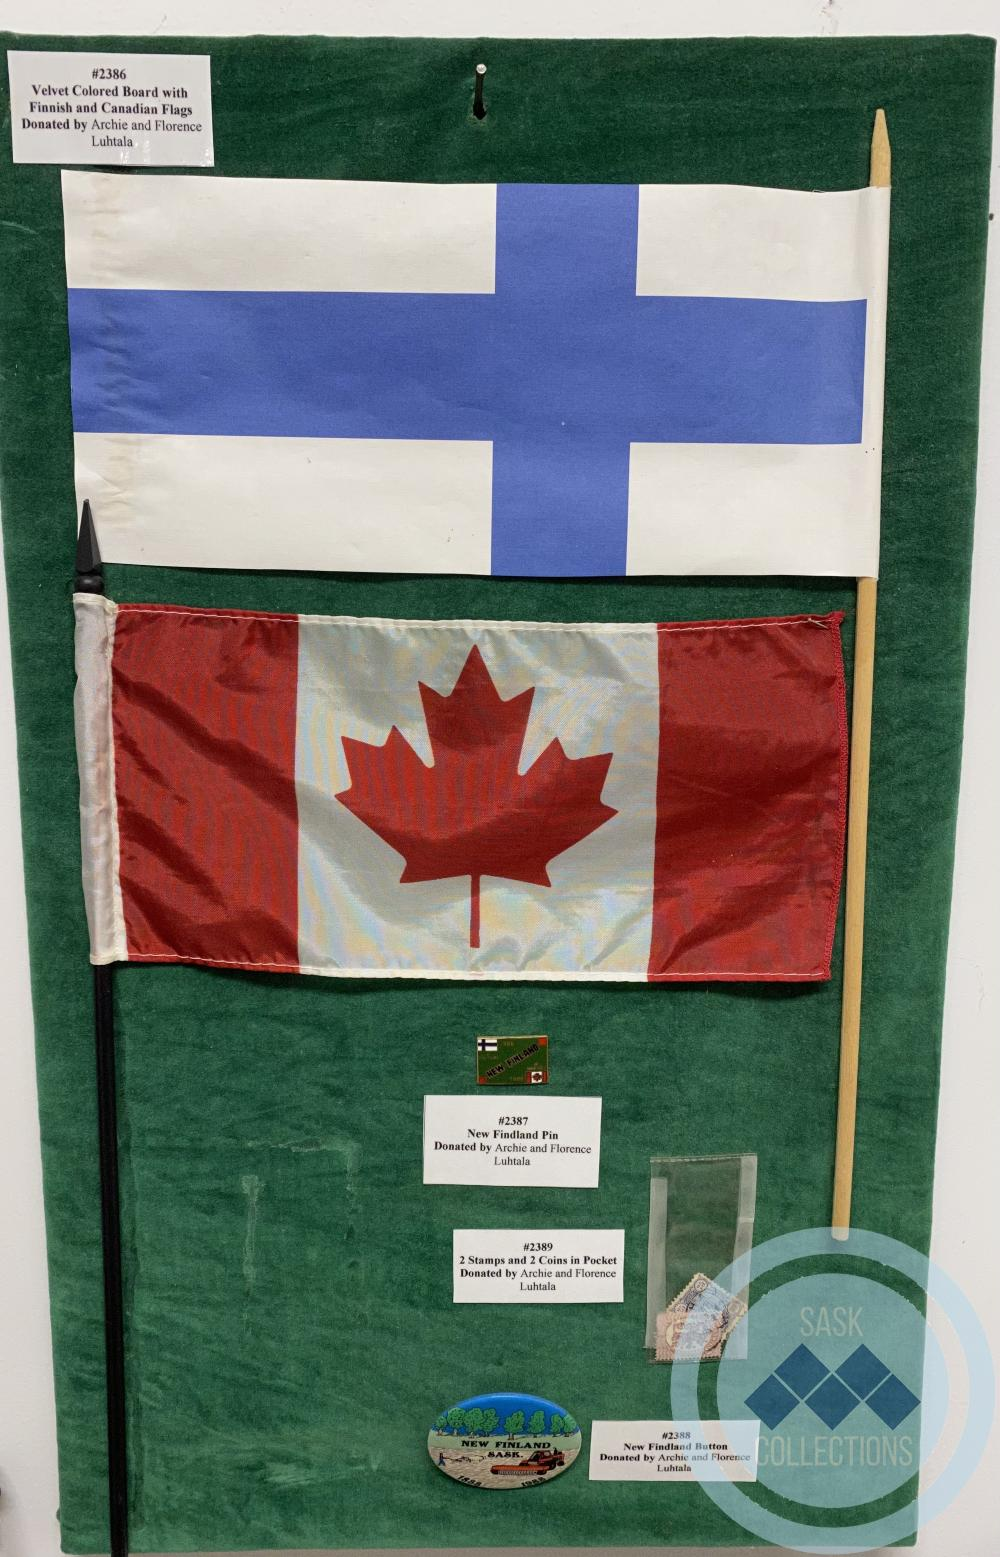 Velvet Colored Board with Finnish and Canadian Flags